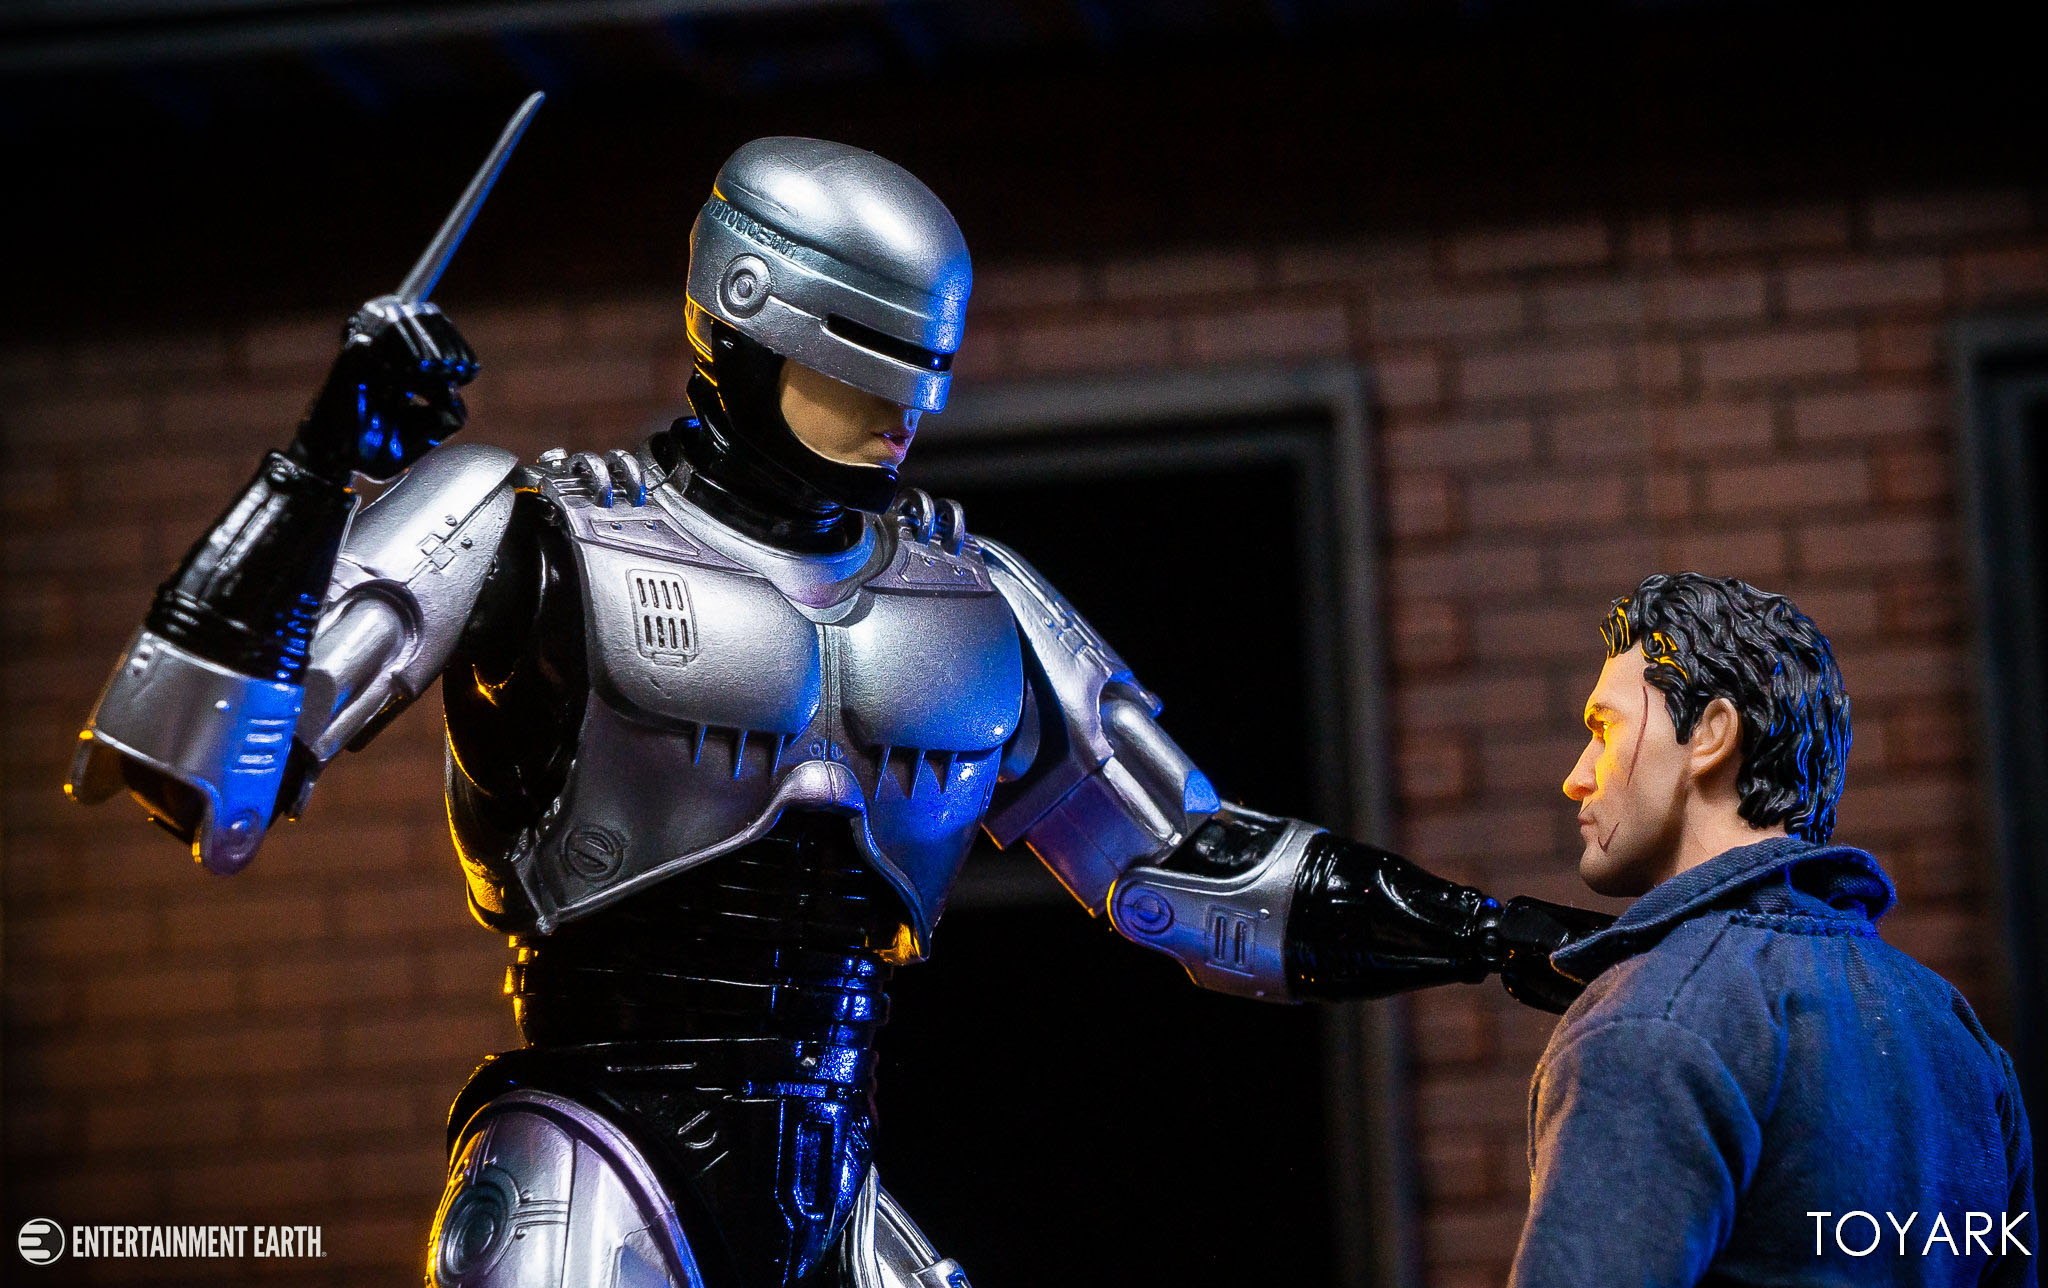 https://news.toyark.com/wp-content/uploads/sites/4/2019/03/MAFEX-Robocop-Gallery-027.jpg